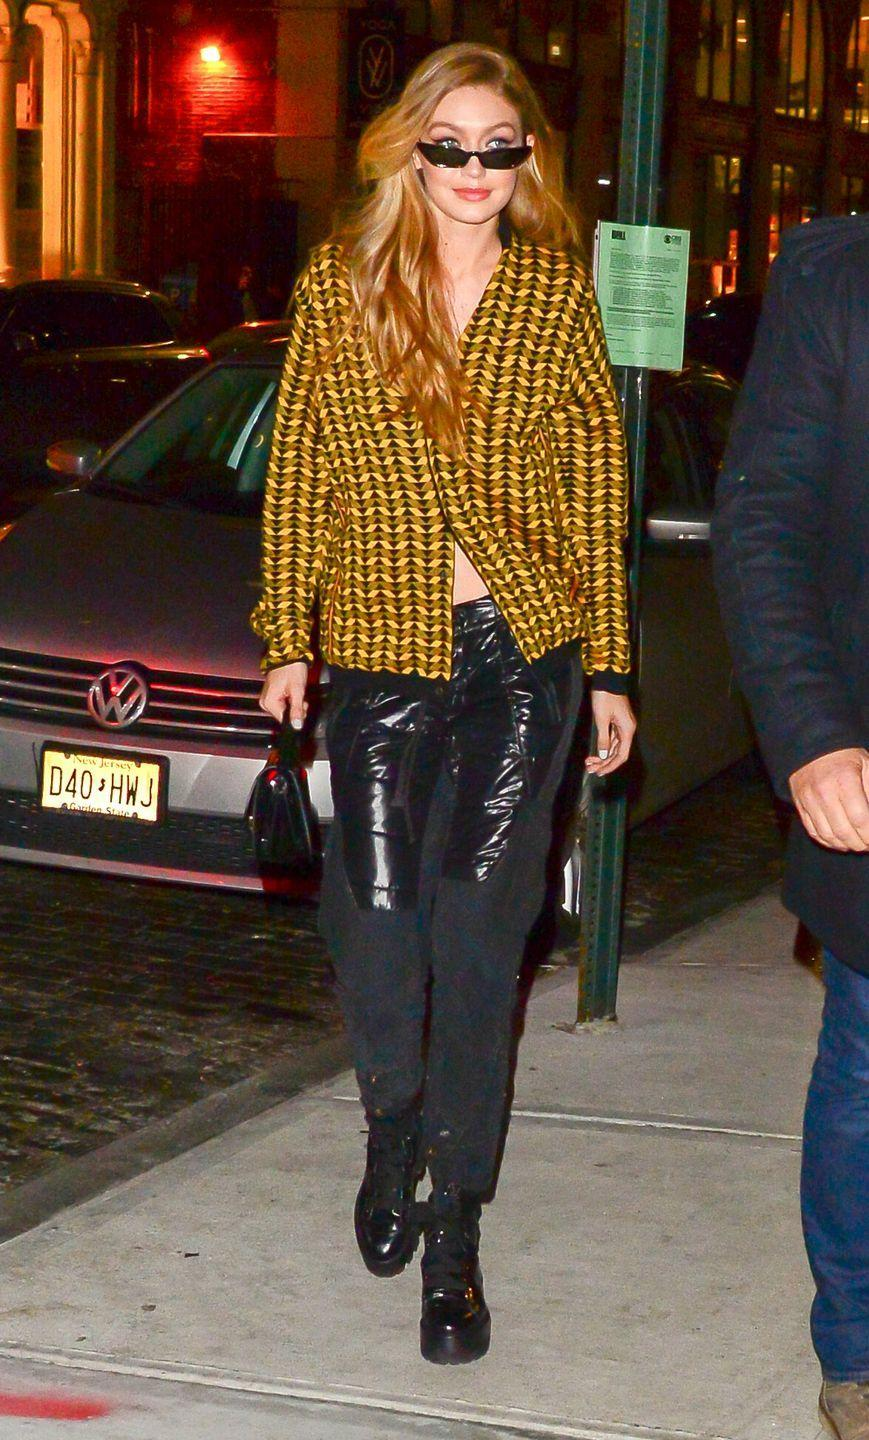 <p>In a mustard yellow chevron shirt, leather padded pants, platform boots, and slim cat eye sunglasses while out in NYC.</p>